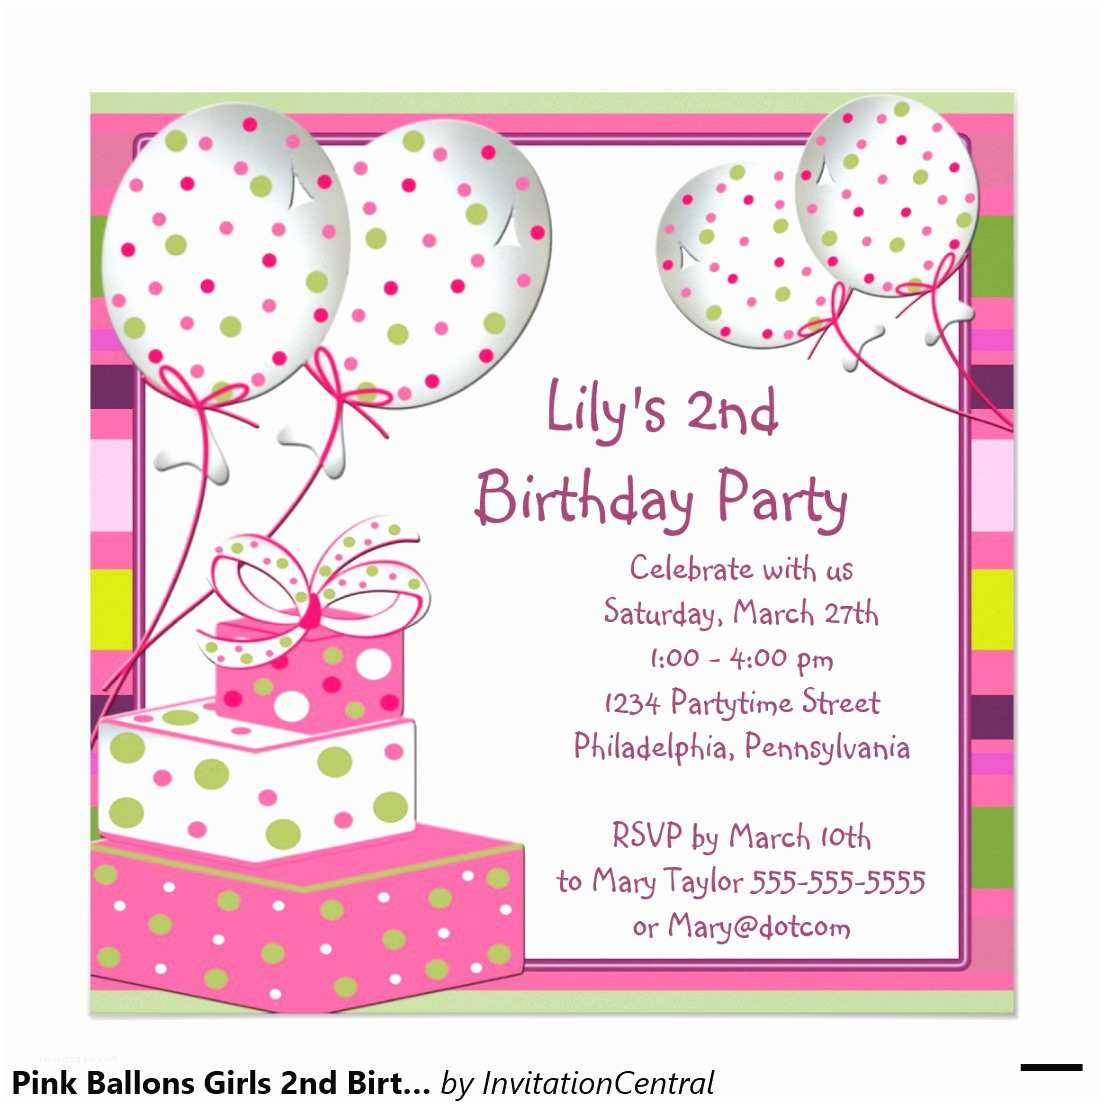 Birthday Party Invitations Birthday Party Invitation Card